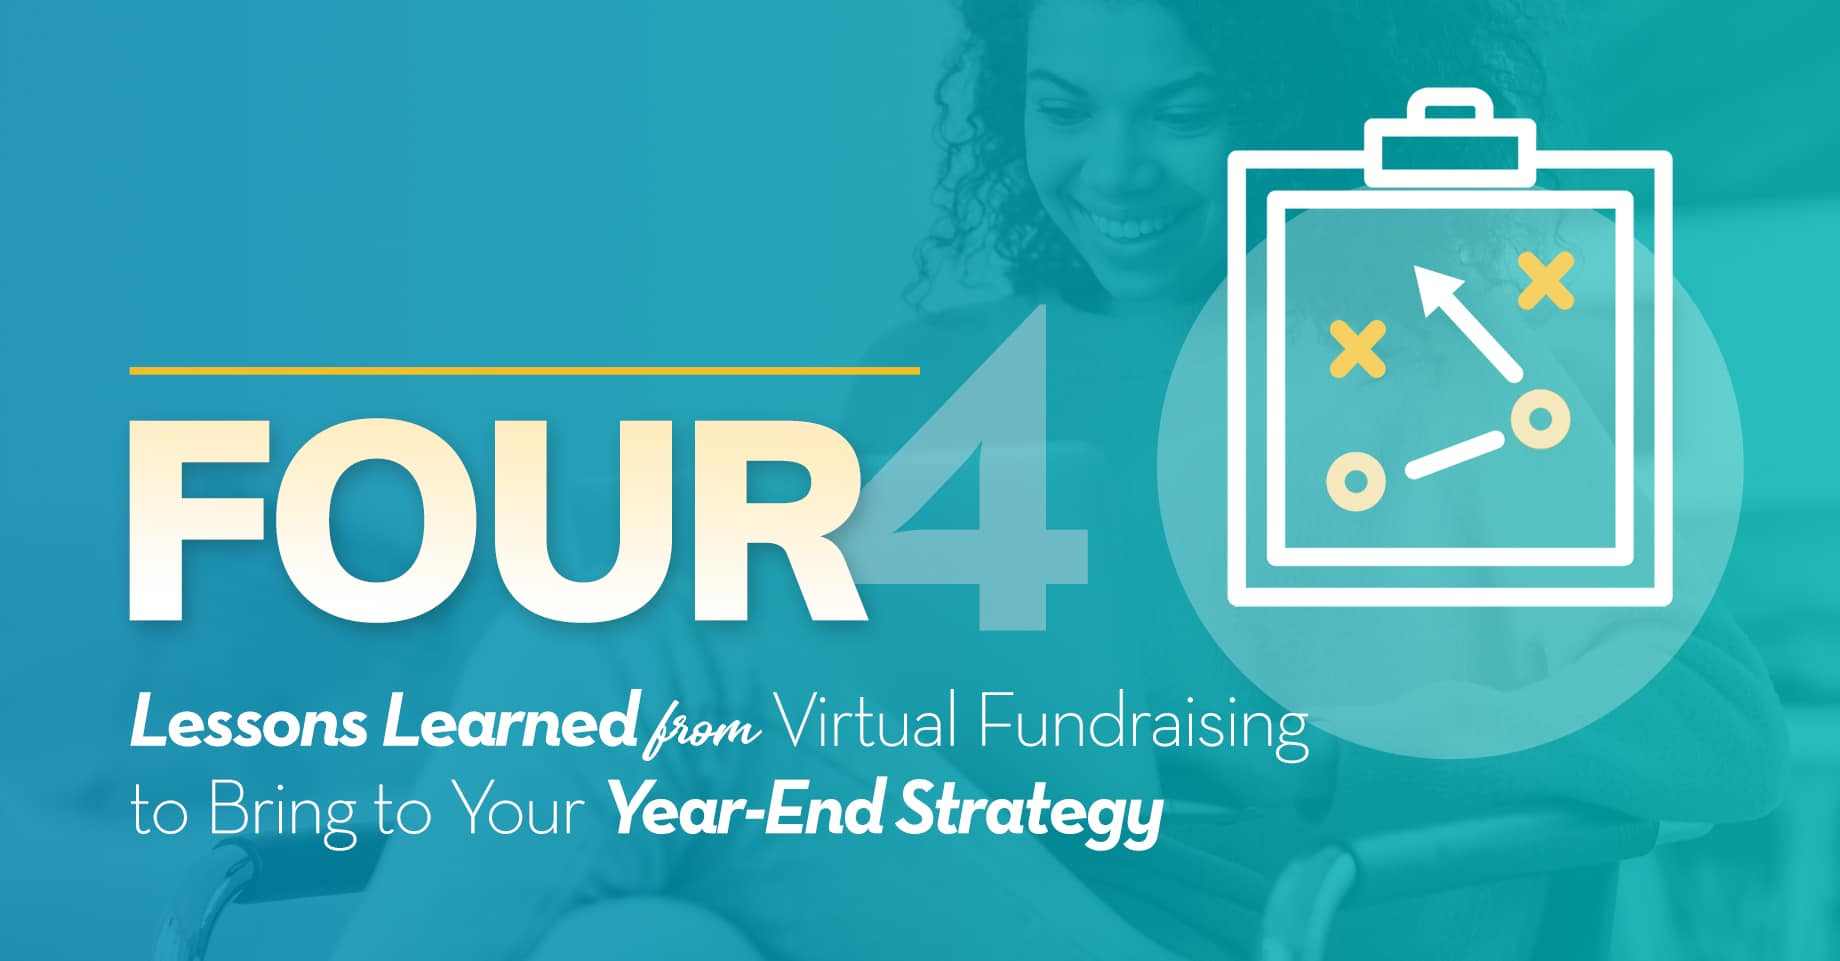 Four Lessons for End of Year Fundraising